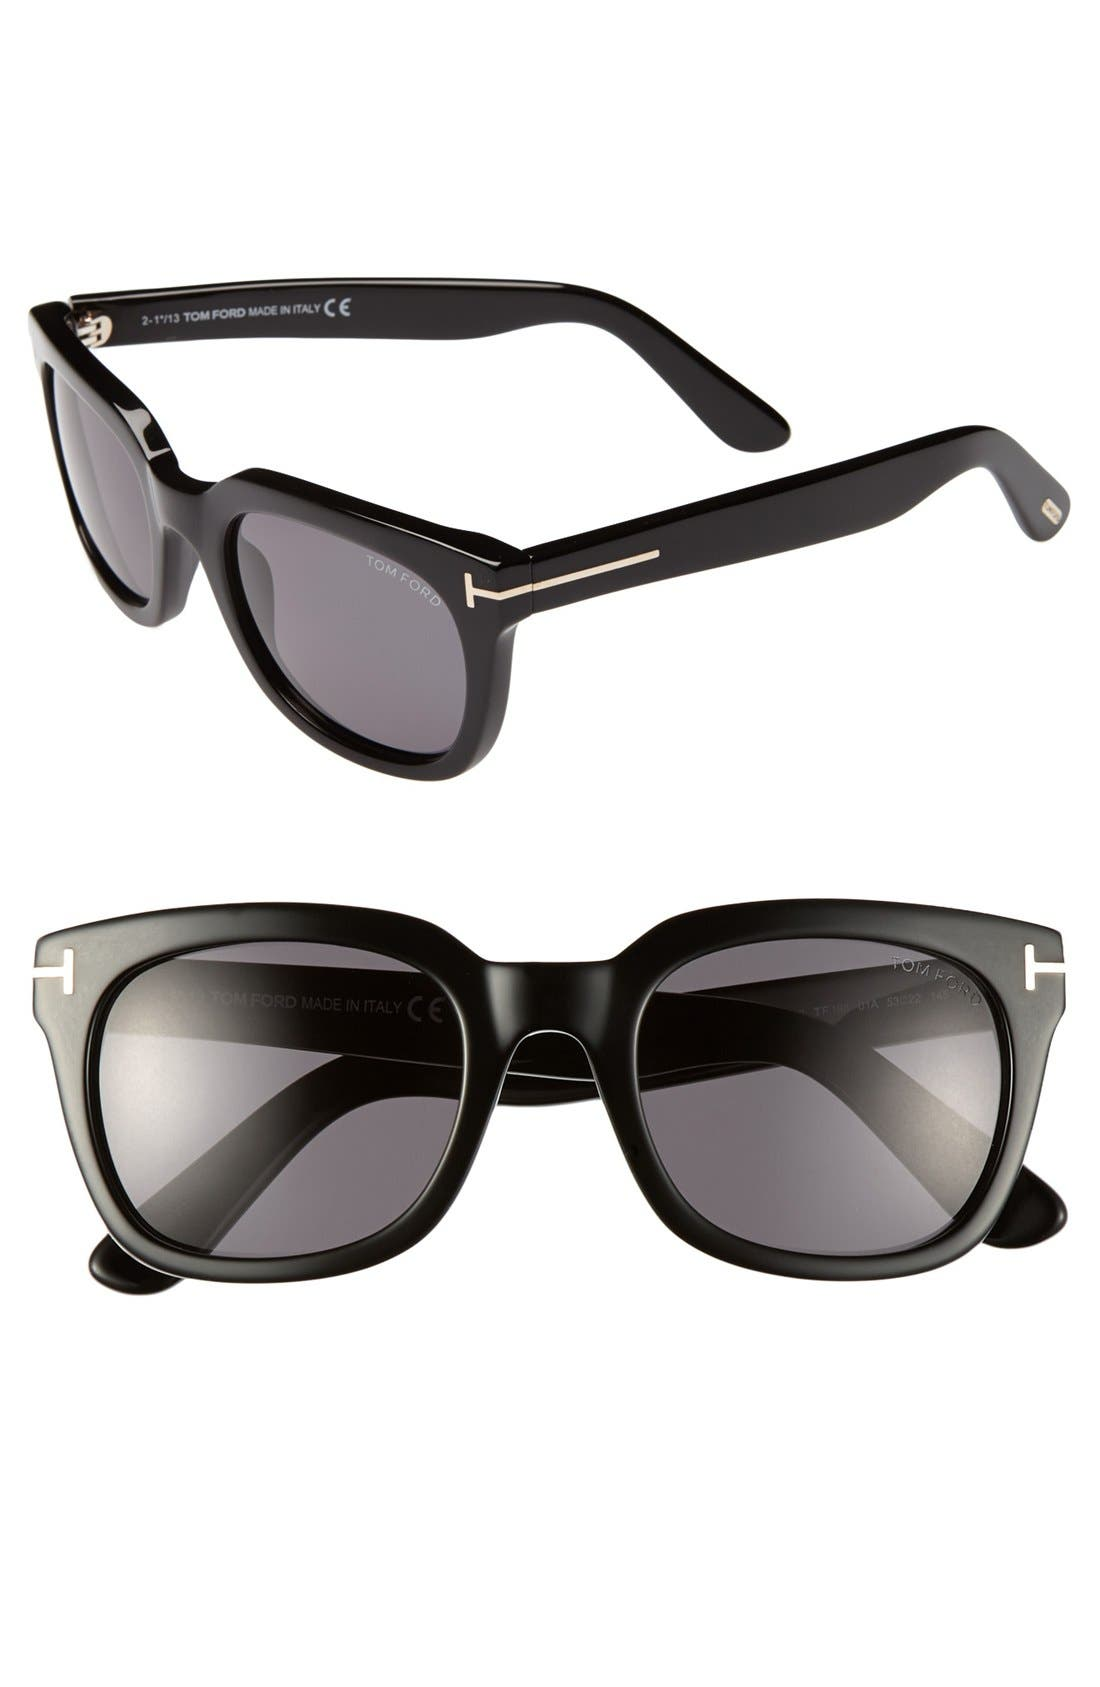 Alternate Image 1 Selected - Tom Ford 'Campbell' 53mm Sunglasses